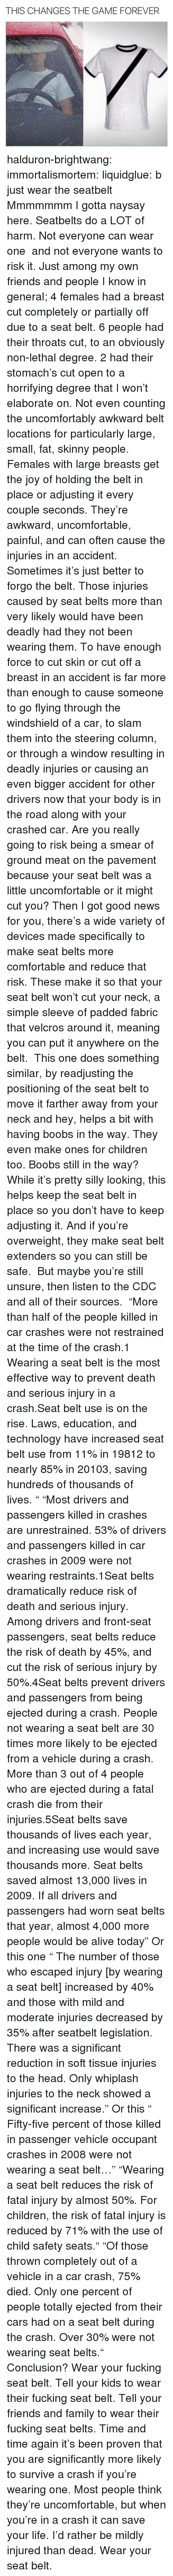 "cdc: THIS CHANGES THE GAME FOREVER halduron-brightwang:  immortalismortem:  liquidglue:   b just wear the seatbelt   Mmmmmmm I gotta naysay here. Seatbelts do a LOT of harm. Not everyone can wear one  and not everyone wants to risk it. Just among my own friends and people I know in general; 4 females had a breast cut completely or partially off due to a seat belt. 6 people had their throats cut, to an obviously non-lethal degree. 2 had their stomach's cut open to a horrifying degree that I won't elaborate on. Not even counting the uncomfortably awkward belt locations for particularly large, small, fat, skinny people. Females with large breasts get the joy of holding the belt in place or adjusting it every couple seconds. They're awkward, uncomfortable, painful, and can often cause the injuries in an accident. Sometimes it's just better to forgo the belt.  Those injuries caused by seat belts more than very likely would have been deadly had they not been wearing them. To have enough force to cut skin or cut off a breast in an accident is far more than enough to cause someone to go flying through the windshield of a car, to slam them into the steering column, or through a window resulting in deadly injuries or causing an even bigger accident for other drivers now that your body is in the road along with your crashed car. Are you really going to risk being a smear of ground meat on the pavement because your seat belt was a little uncomfortable or it might cut you? Then I got good news for you, there's a wide variety of devices made specifically to make seat belts more comfortable and reduce that risk. These make it so that your seat belt won't cut your neck, a simple sleeve of padded fabric that velcros around it, meaning you can put it anywhere on the belt.  This one does something similar, by readjusting the positioning of the seat belt to move it farther away from your neck and hey, helps a bit with having boobs in the way. They even make ones for children too. Boobs still in the way? While it's pretty silly looking, this helps keep the seat belt in place so you don't have to keep adjusting it. And if you're overweight, they make seat belt extenders so you can still be safe.  But maybe you're still unsure, then listen to the CDC and all of their sources.  ""More than half of the people killed in car crashes were not restrained at the time of the crash.1 Wearing a seat belt is the most effective way to prevent death and serious injury in a crash.Seat belt use is on the rise. Laws, education, and technology have increased seat belt use from 11% in 19812 to nearly 85% in 20103, saving hundreds of thousands of lives. "" ""Most drivers and passengers killed in crashes are unrestrained. 53% of drivers and passengers killed in car crashes in 2009 were not wearing restraints.1Seat belts dramatically reduce risk of death and serious injury. Among drivers and front-seat passengers, seat belts reduce the risk of death by 45%, and cut the risk of serious injury by 50%.4Seat belts prevent drivers and passengers from being ejected during a crash. People not wearing a seat belt are 30 times more likely to be ejected from a vehicle during a crash. More than 3 out of 4 people who are ejected during a fatal crash die from their injuries.5Seat belts save thousands of lives each year, and increasing use would save thousands more. Seat belts saved almost 13,000 lives in 2009. If all drivers and passengers had worn seat belts that year, almost 4,000 more people would be alive today"" Or this one ""   The number of those who escaped injury [by wearing a seat belt] increased by 40% and those with mild and moderate injuries decreased by 35% after seatbelt legislation. There was a significant reduction in soft tissue injuries to the head. Only whiplash injuries to the neck showed a significant increase."" Or this ""  Fifty-five percent of those killed in passenger vehicle occupant crashes in 2008 were not wearing a seat belt…"" ""Wearing a seat belt reduces the risk of fatal injury by almost 50%. For children, the risk of fatal injury is reduced by 71% with the use of child safety seats."" ""Of those thrown completely out of a vehicle in a car crash, 75% died. Only one percent of people totally ejected from their cars had on a seat belt during the crash. Over 30% were not wearing seat belts."" Conclusion? Wear your fucking seat belt. Tell your kids to wear their fucking seat belt. Tell your friends and family to wear their fucking seat belts. Time and time again it's been proven that you are significantly more likely to survive a crash if you're wearing one. Most people think they're uncomfortable, but when you're in a crash it can save your life. I'd rather be mildly injured than dead. Wear your seat belt."